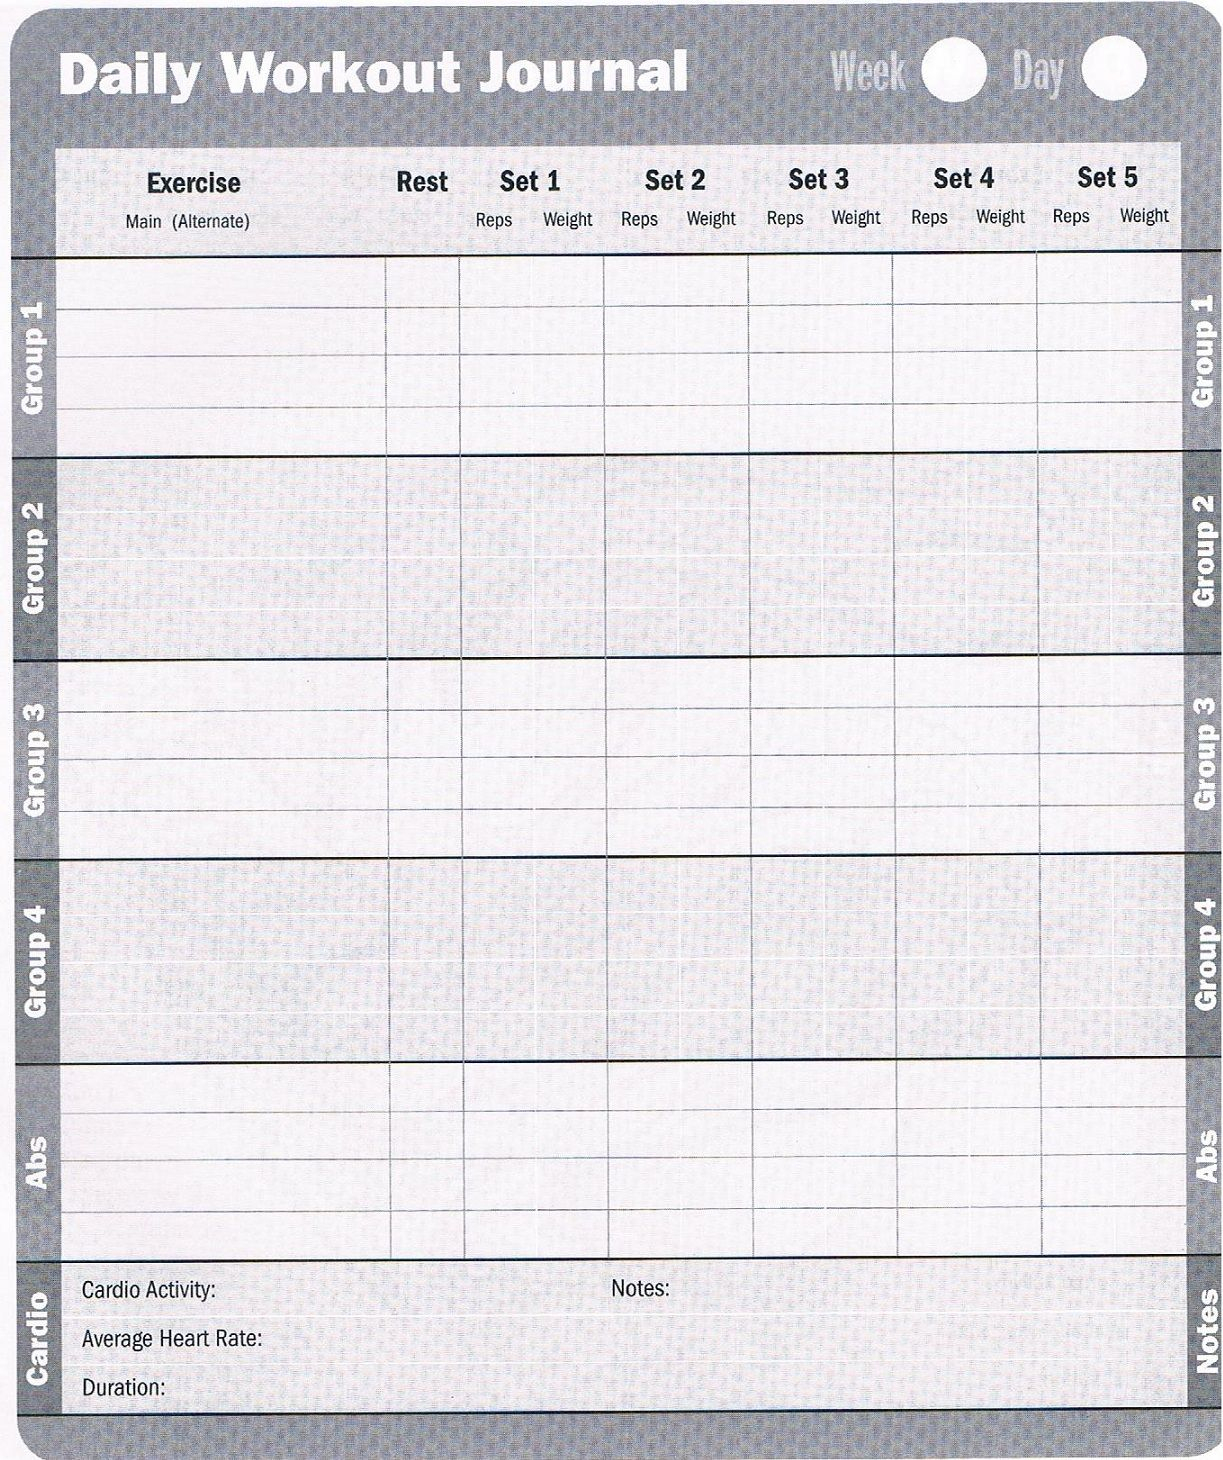 Workout Log: Download These Free Printable Workout Logs To Help You - Free Printable Workout Log Sheets